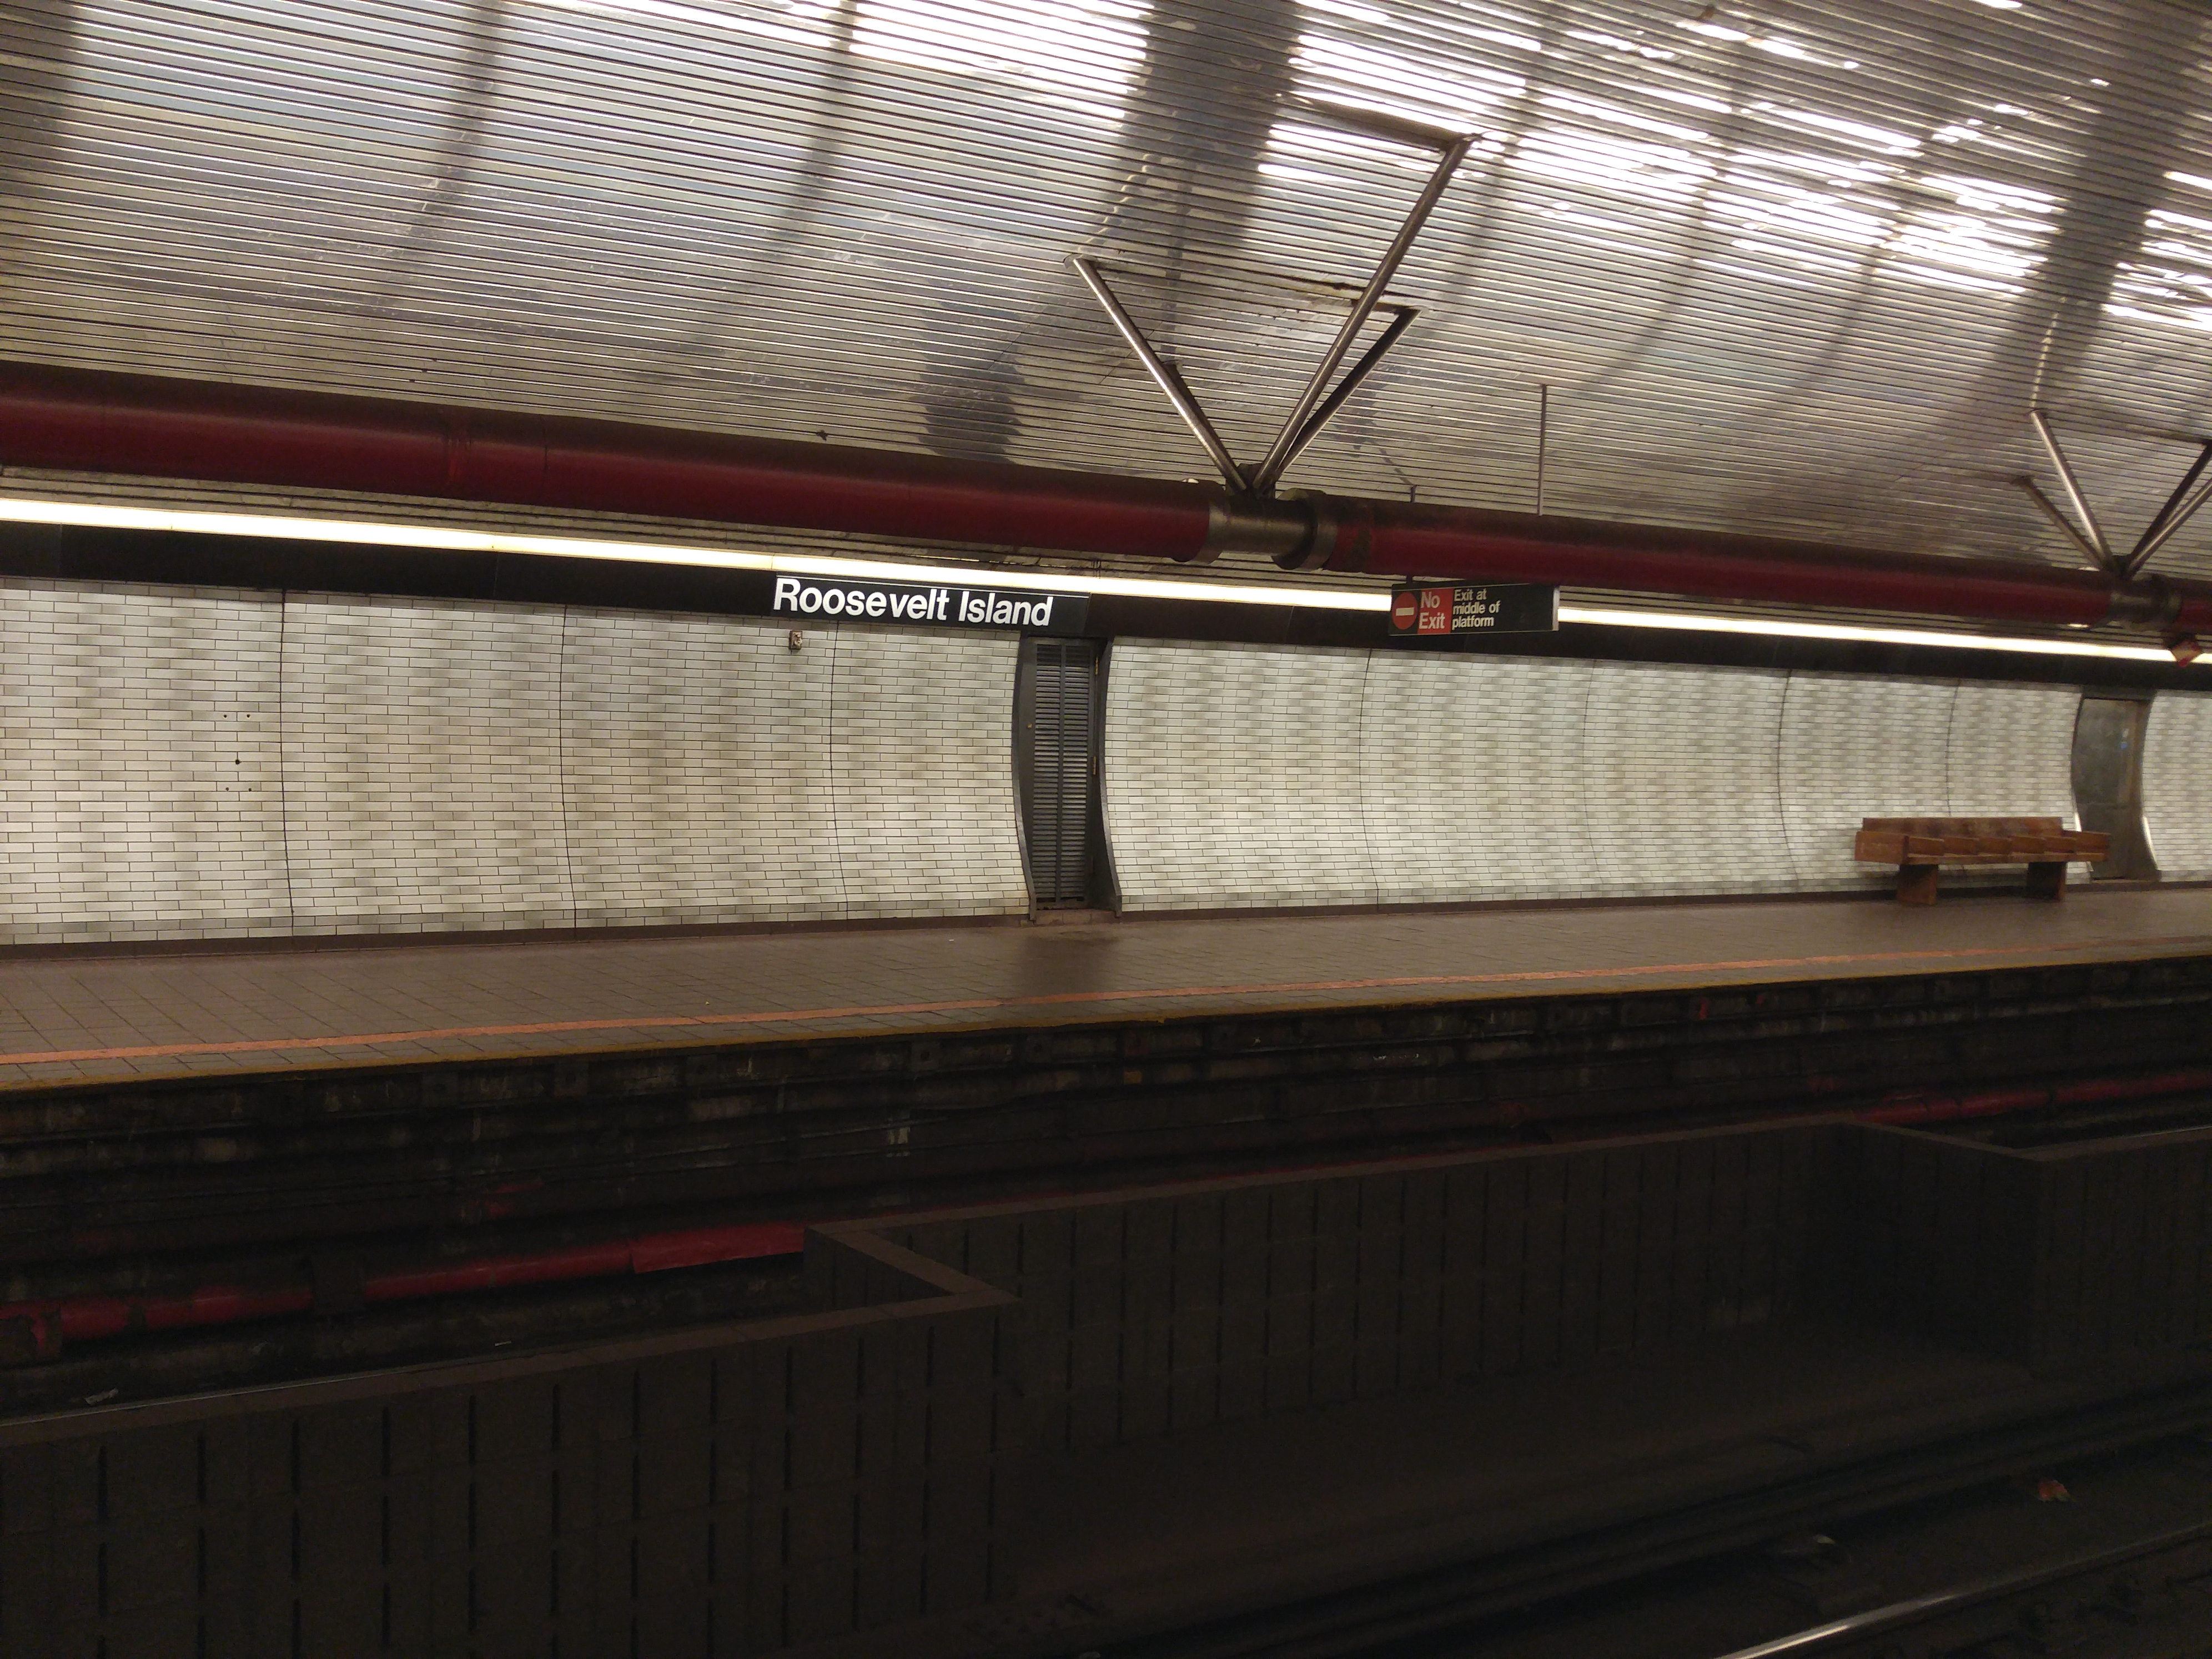 Take the F train to the Roosevelt Island station, one of the deepest in New York.